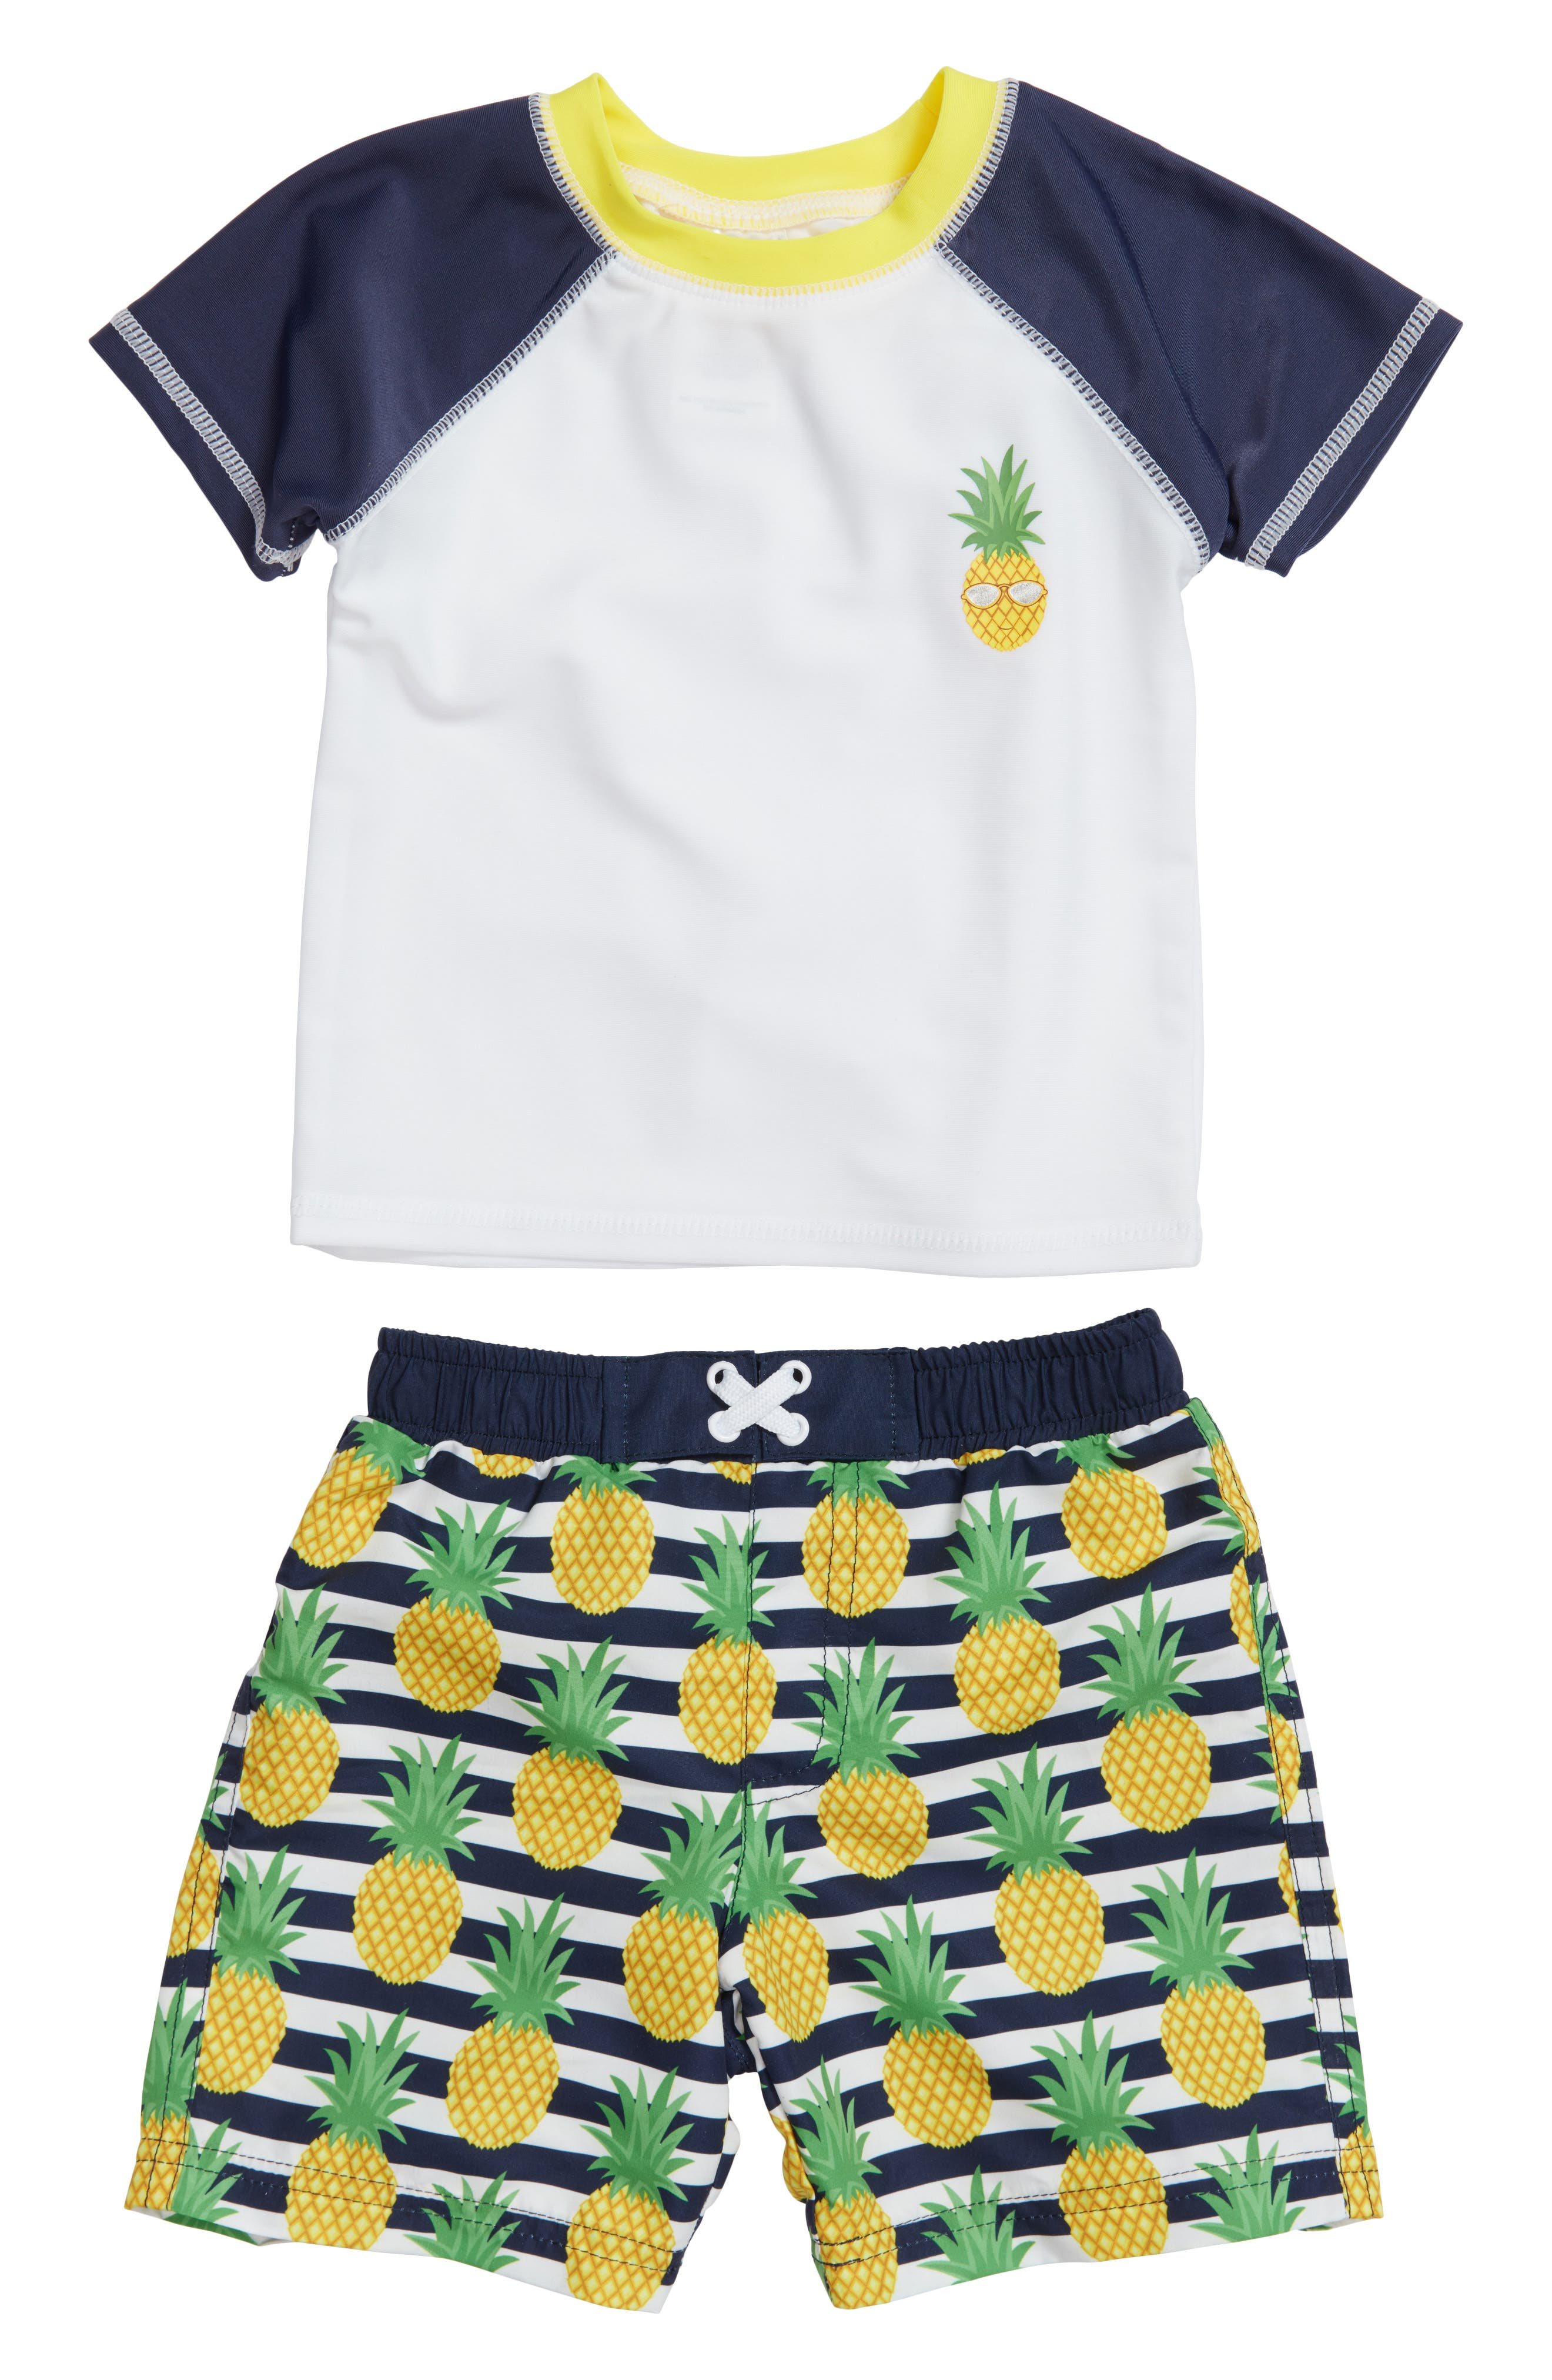 Alternate Image 1 Selected - Sol Swim Preppy Pineapples Two-Piece Rashguard Swimsuit (Baby Boys)